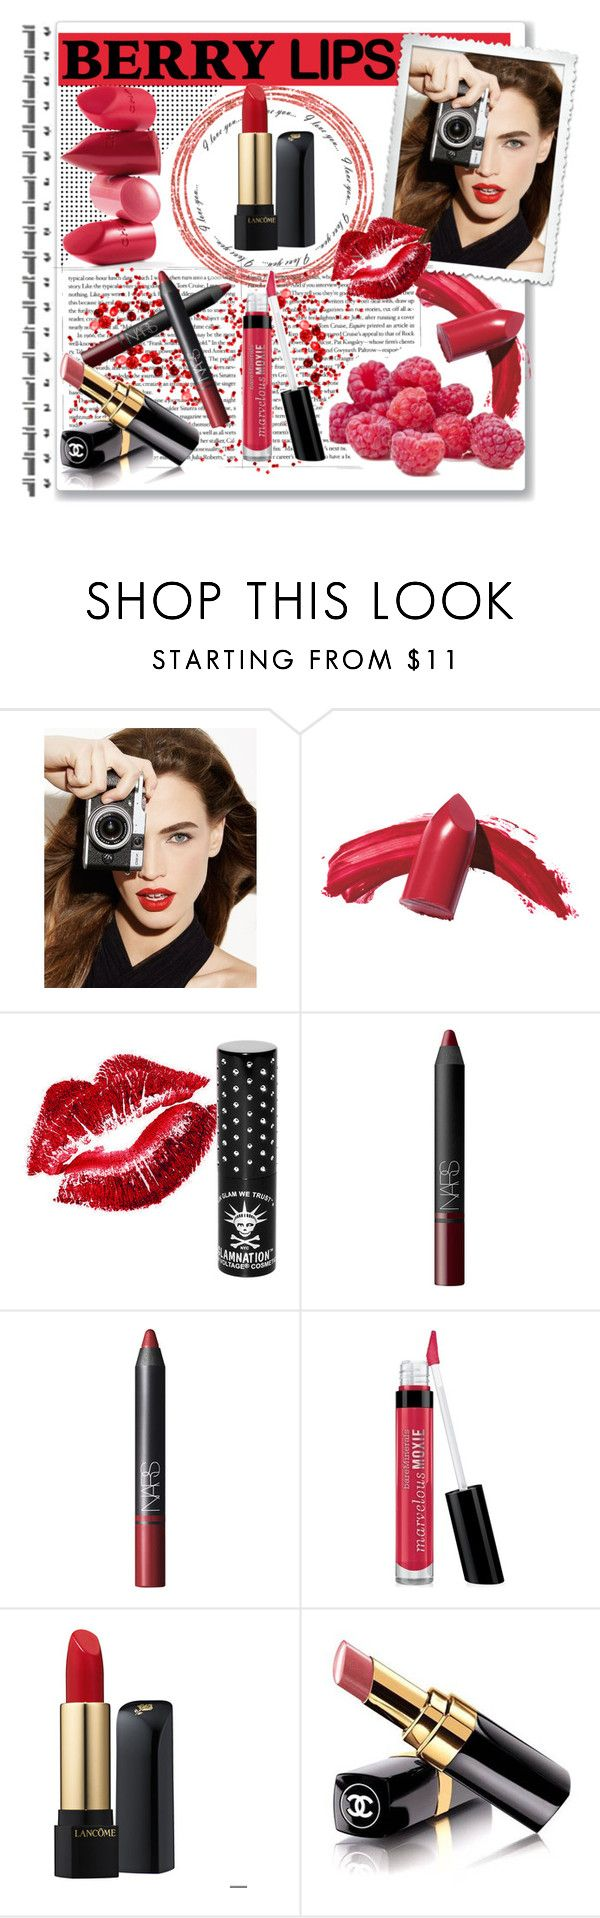 """Berry Lips"" by ericafisher ❤ liked on Polyvore featuring beauty, Smashbox, Elizabeth Arden, Manic Panic NYC, Rossetto, NARS Cosmetics, Bare Escentuals, Lancôme, Chanel and berrypretty"